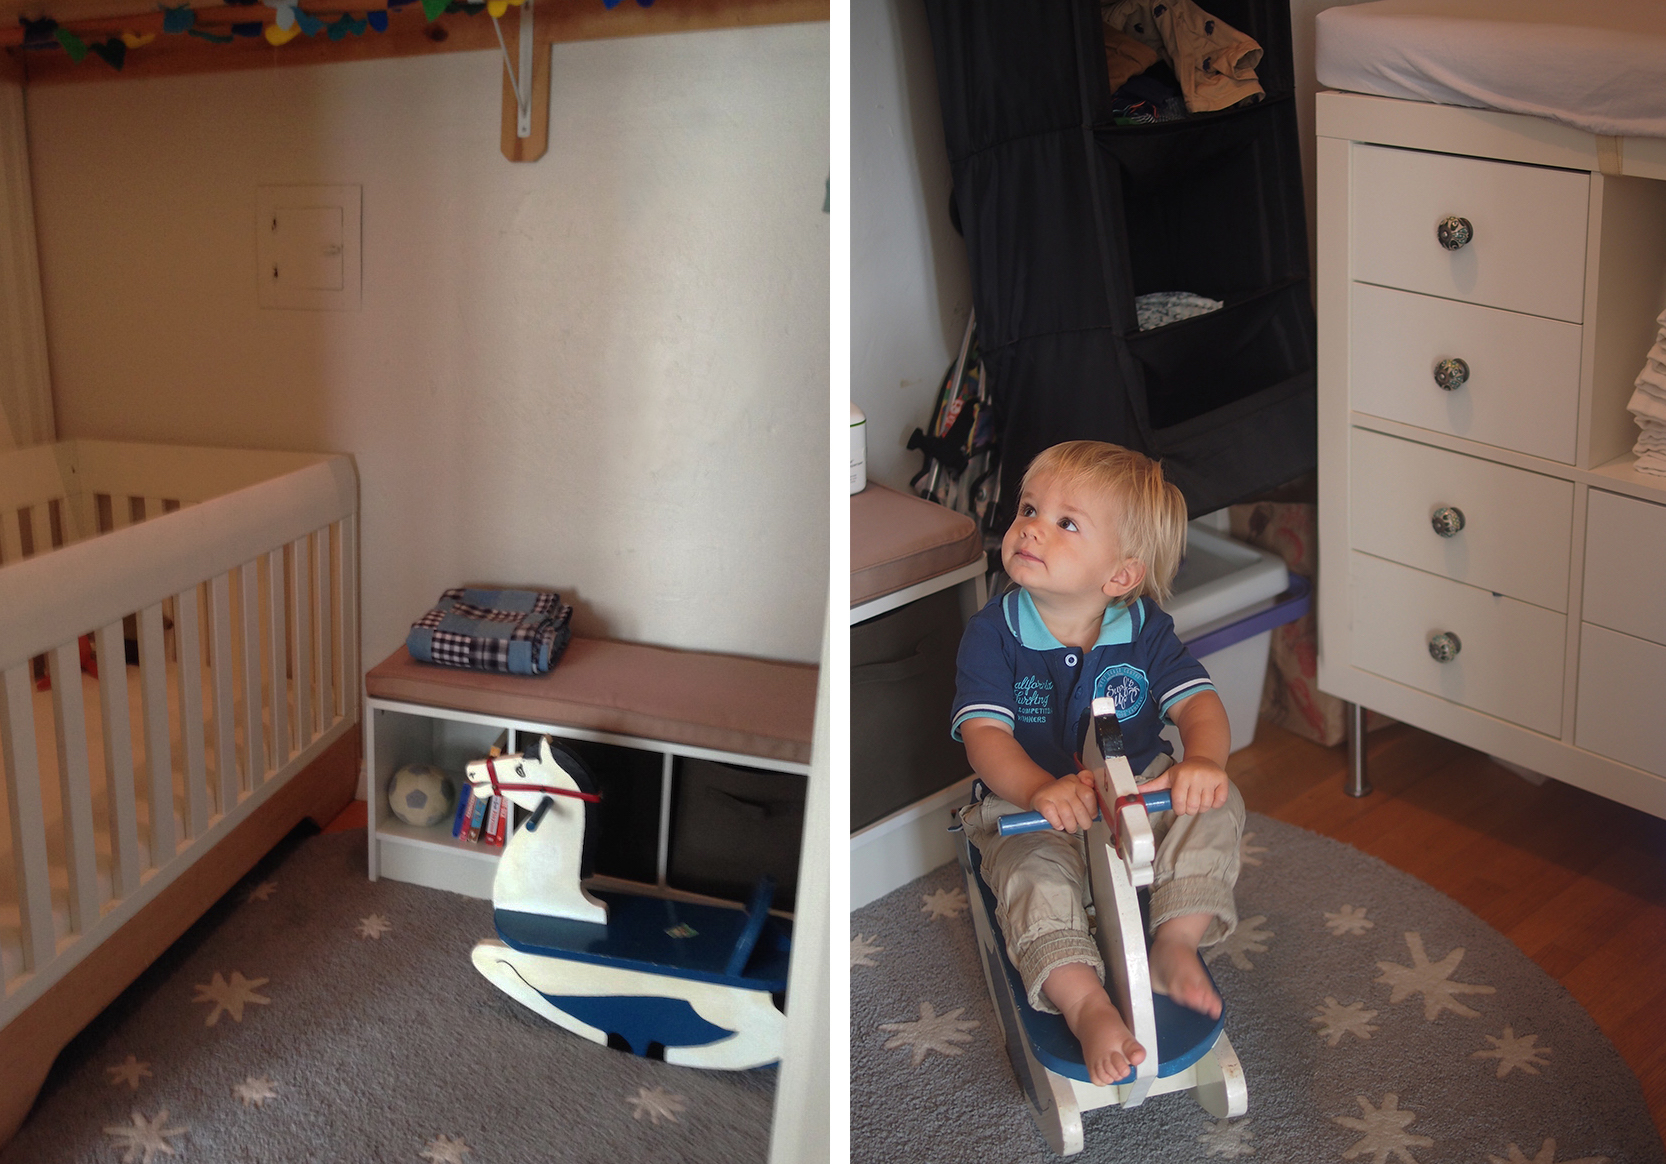 Hunter's nursery tucks neatly away into the closet. Fitting a full-sized crib, changing table, clothing and storage.